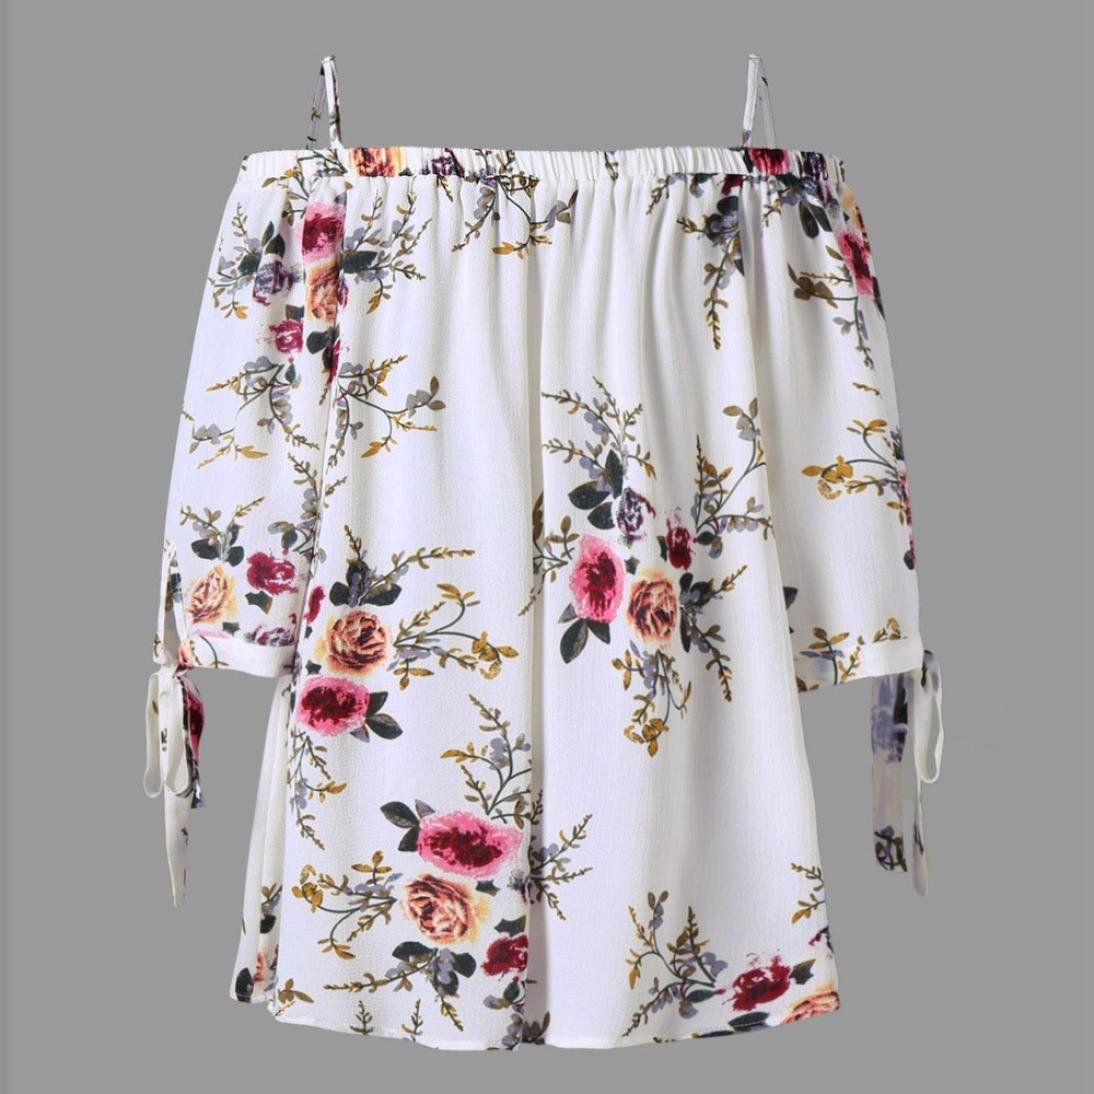 Amazon.com: Vanvler Clearance! Womens Plus Size Shirts Ladies Floral Tops -Cold Shoulder Blouse Casual (5XL, White): Garden & Outdoor